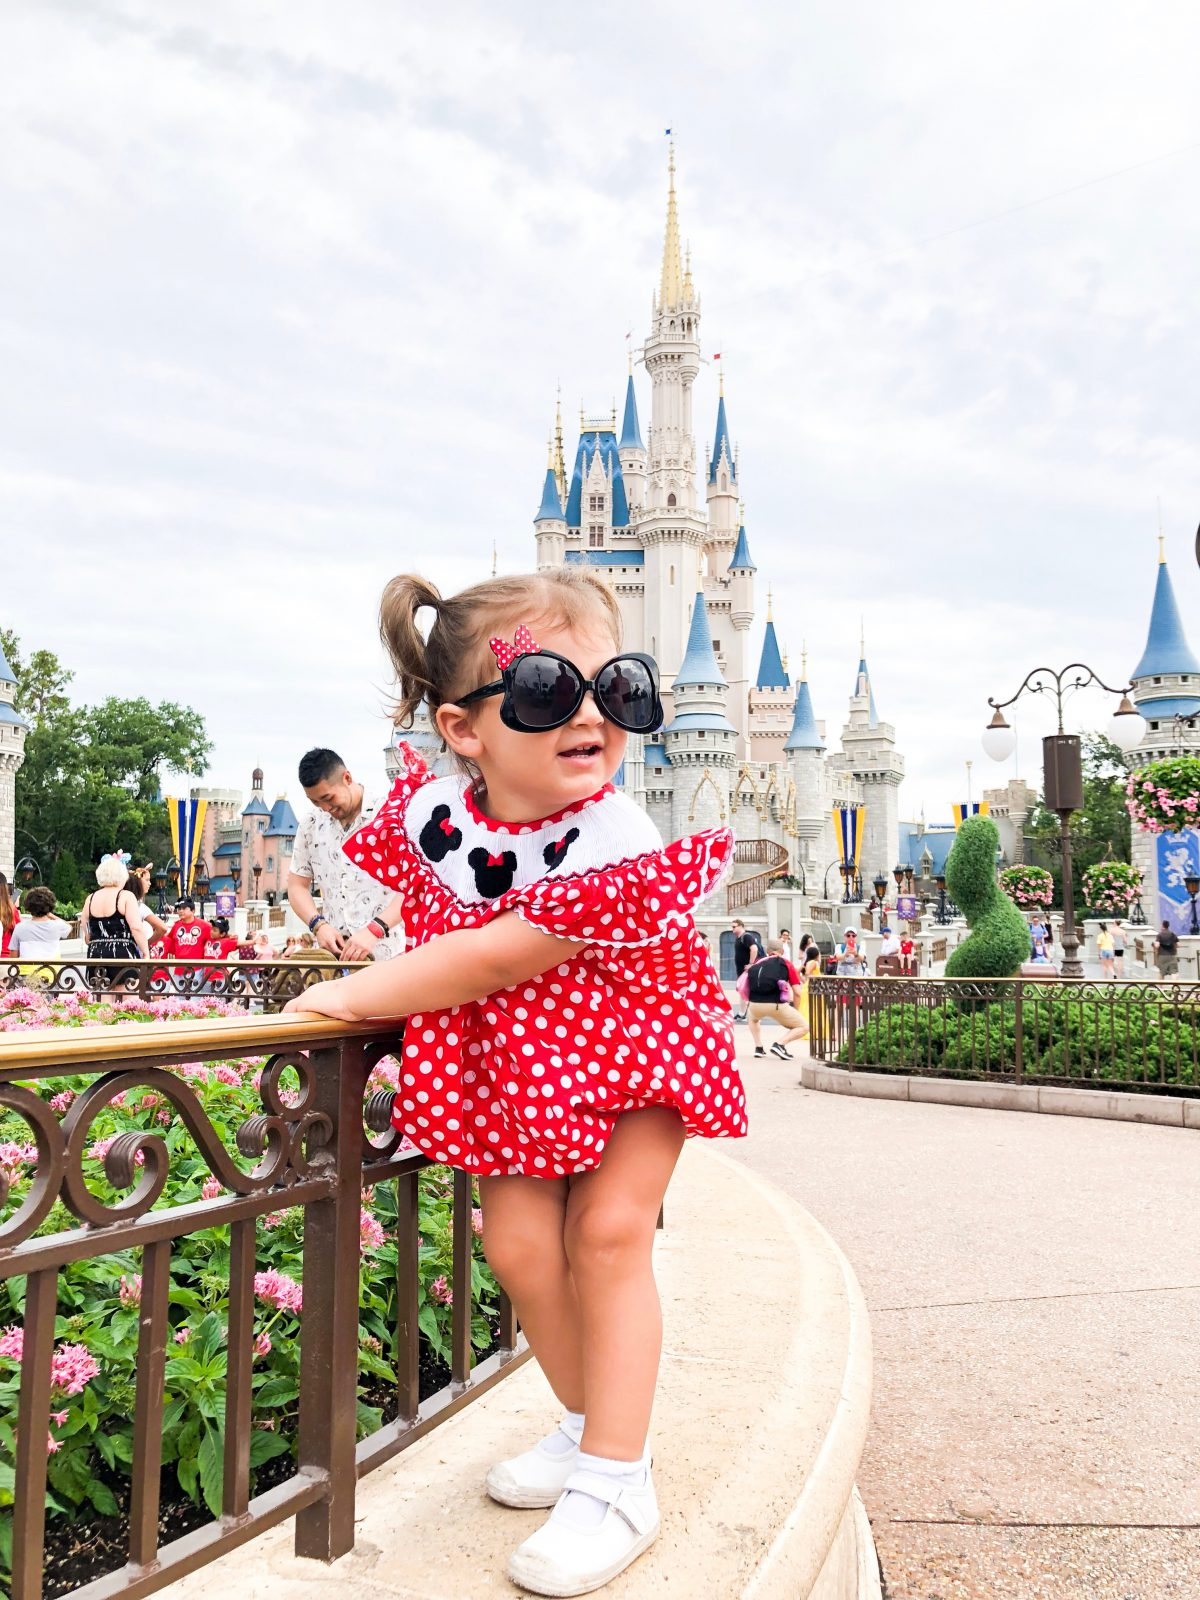 Top 10 places to take a photo in Disney World: Cinderella's Castle at Magic Kingdom